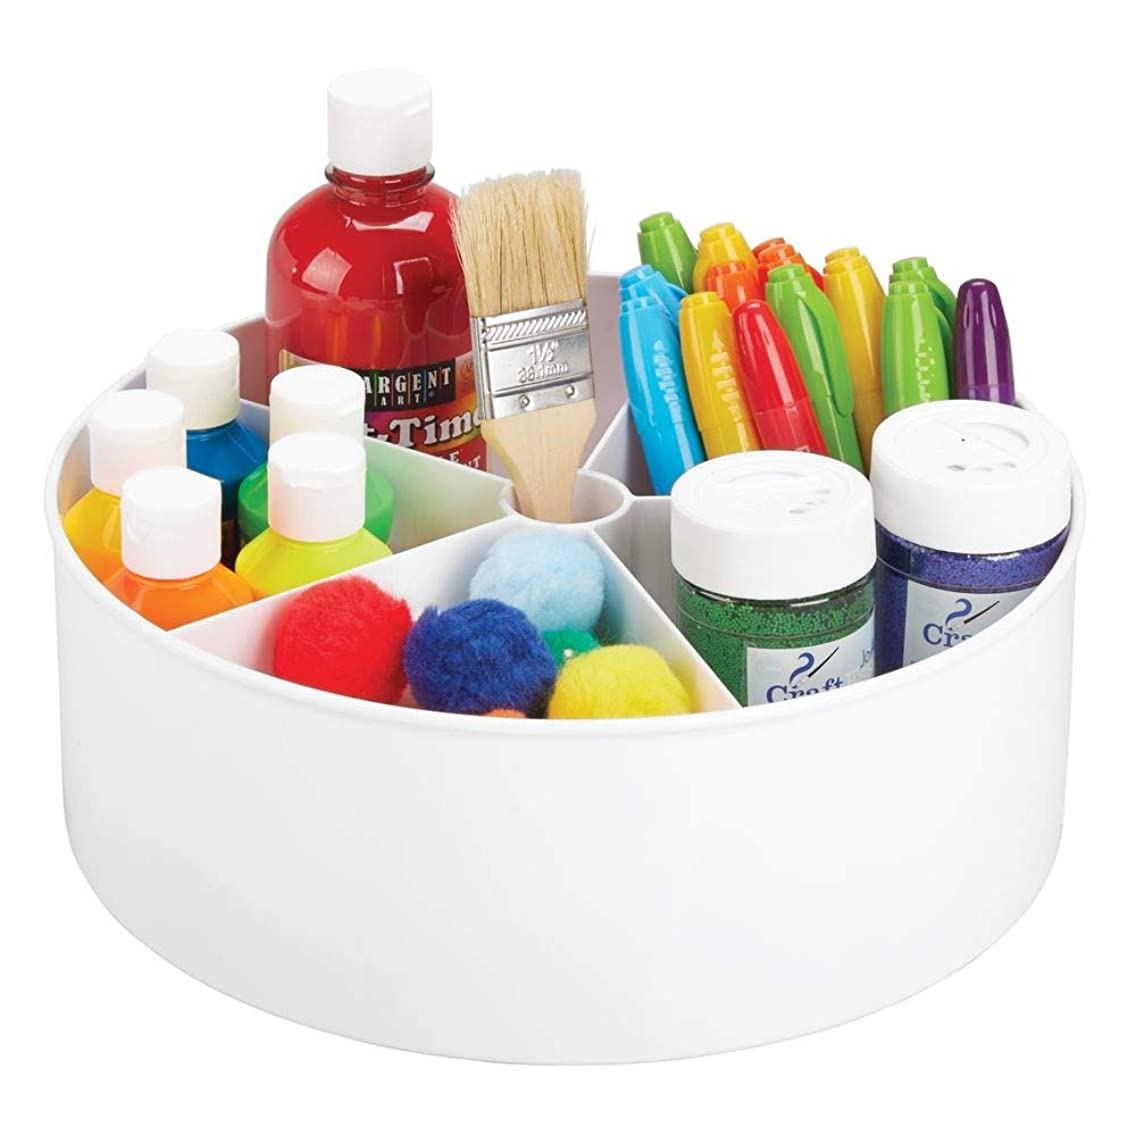 mDesign Deep Plastic Lazy Susan Turntable Storage Organizing Container - Divided Spinning Organizer for Craft, Sewing, Art, School Supplies in Home, Office, Classroom, Playroom or Studio - White